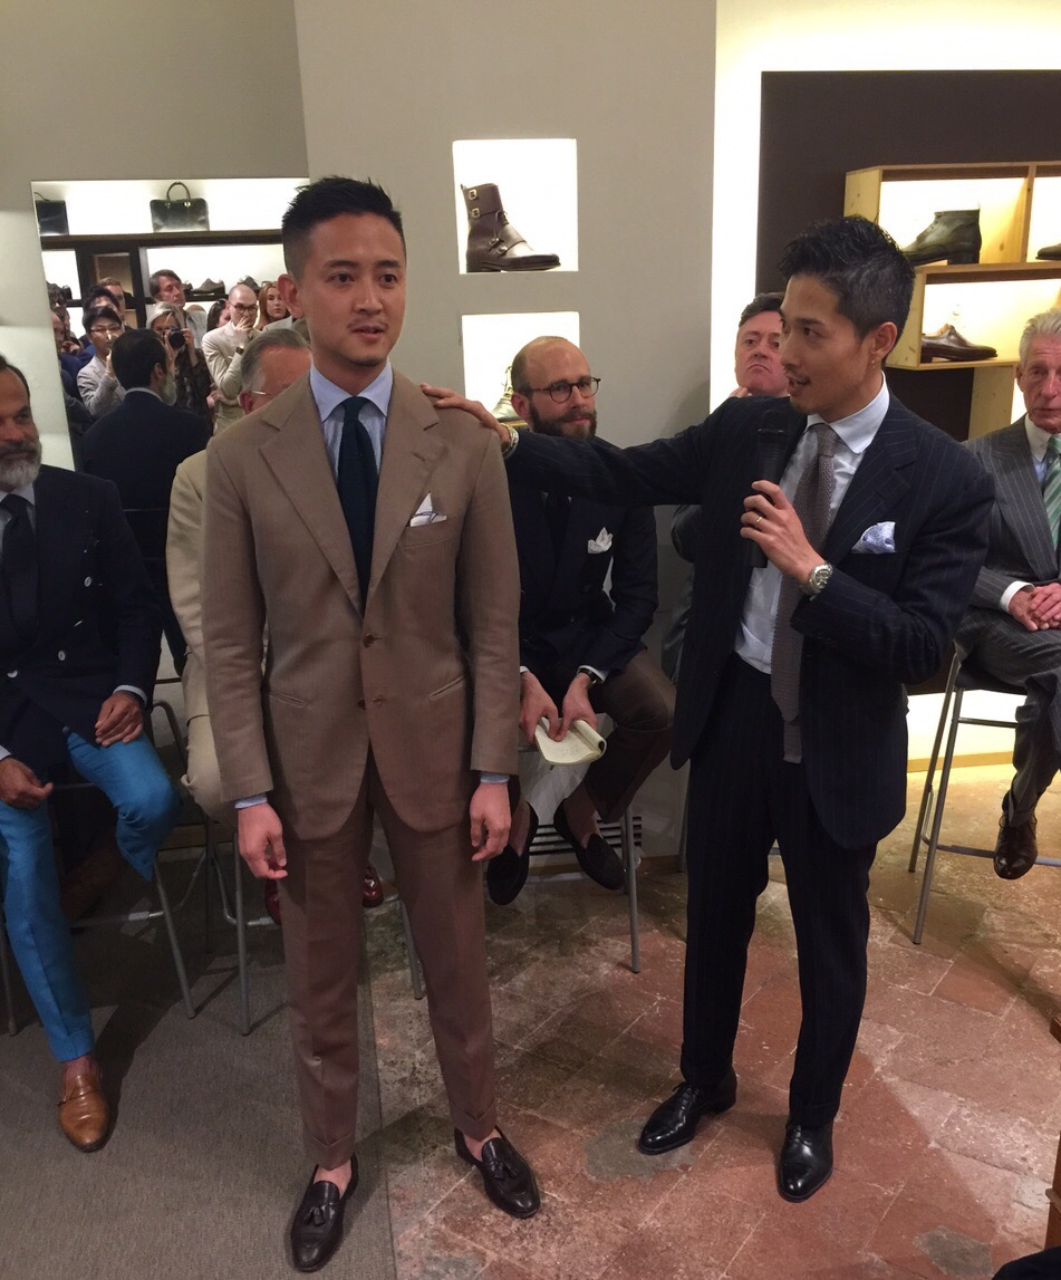 (Alan See, The Armoury Hong Kong serves as a demonstration model asTakahiro Osaki (AKA Taka), Liverano & Liverano discusses and shows the crowd what lies behind the art andcraftsmanship of a Liverano Bespoke Garment.